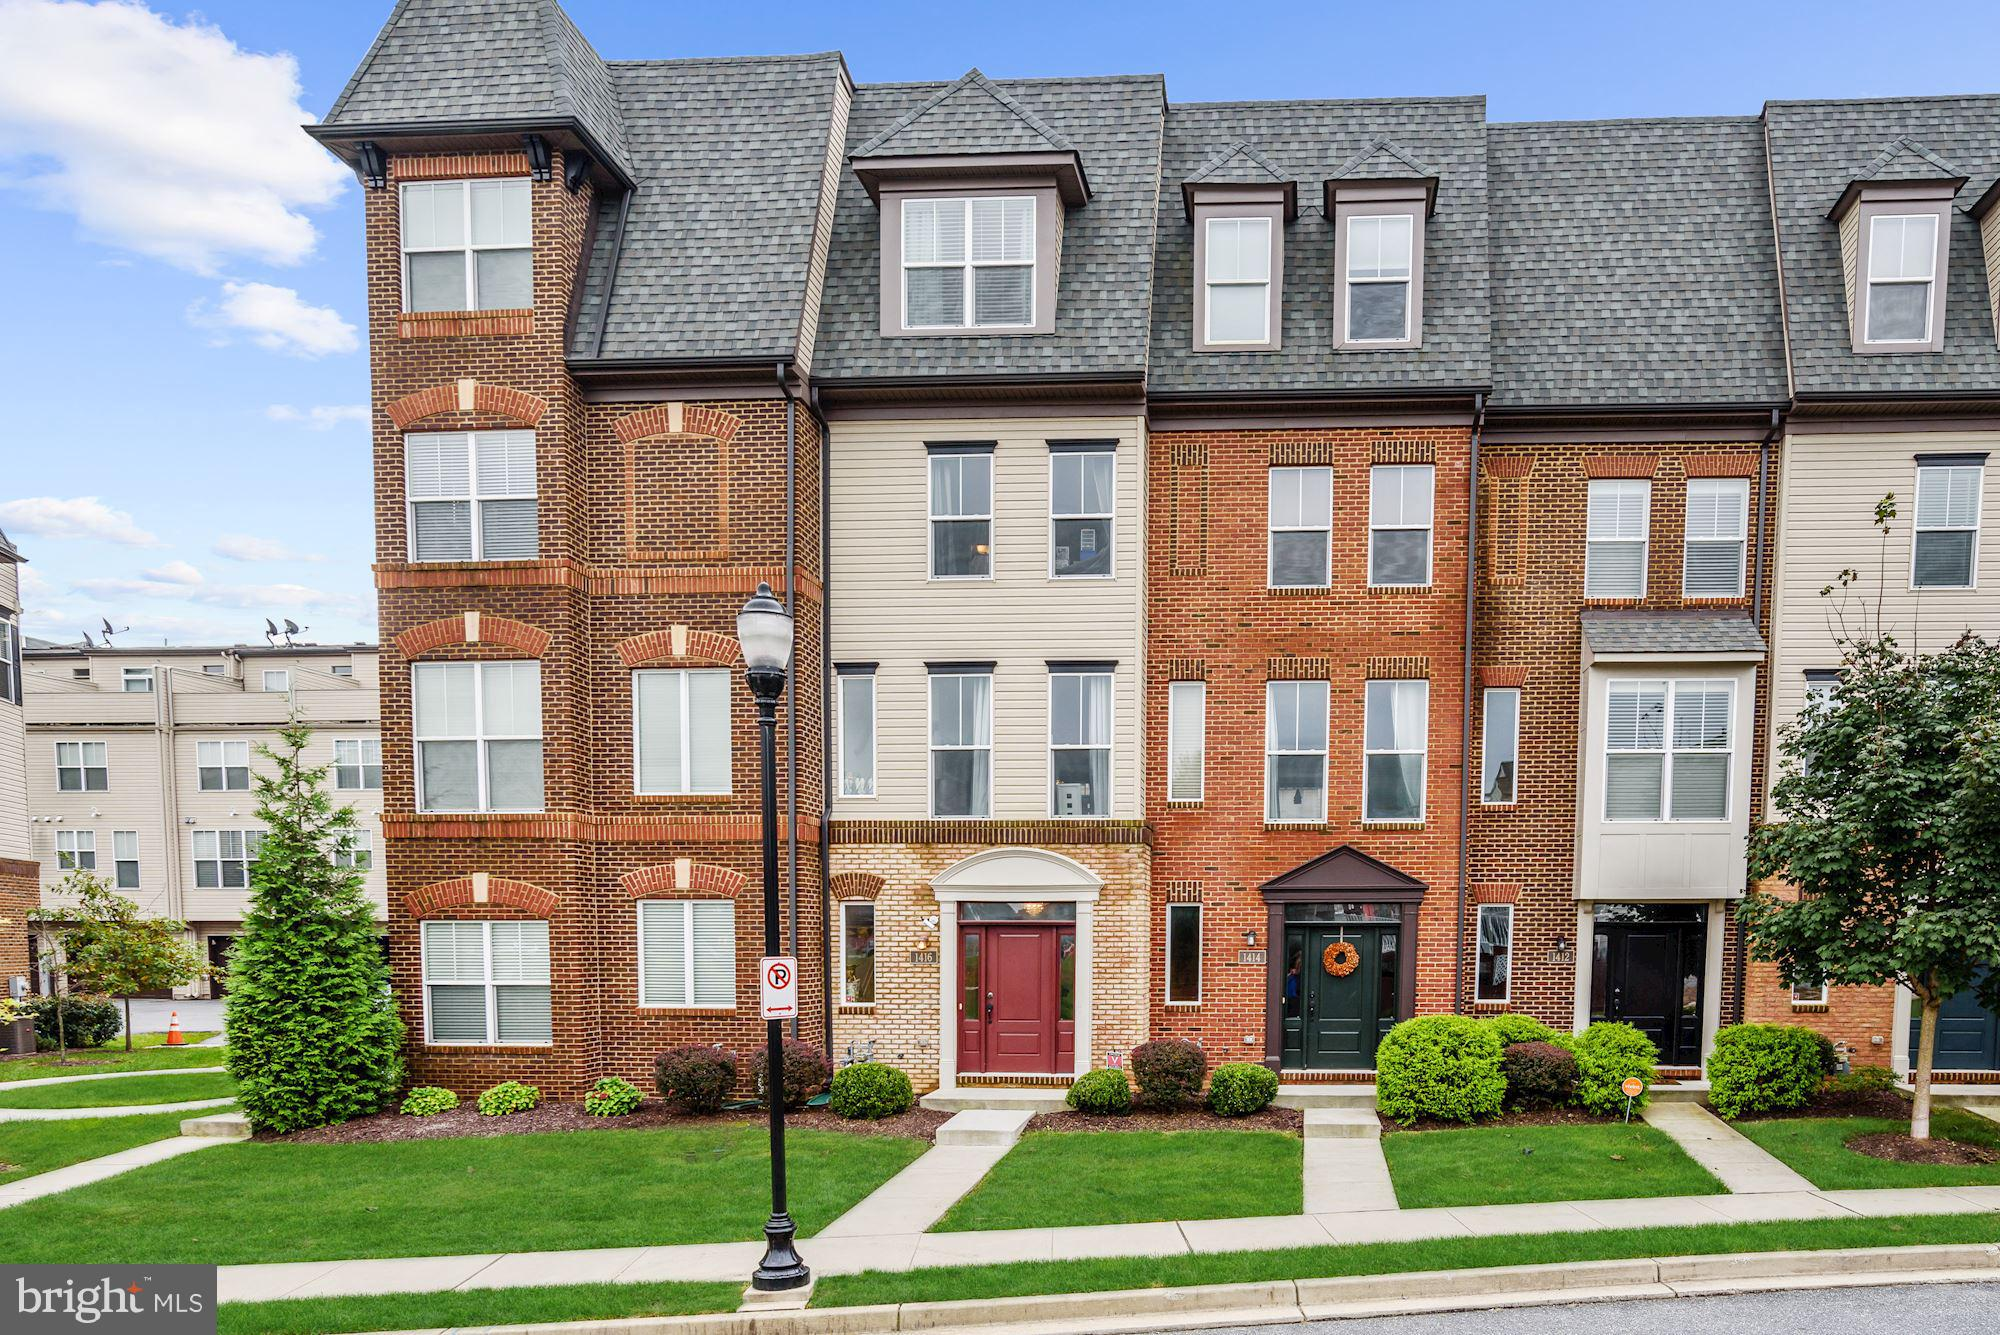 1416 WHEYFIELD DRIVE, FREDERICK, MD 21701